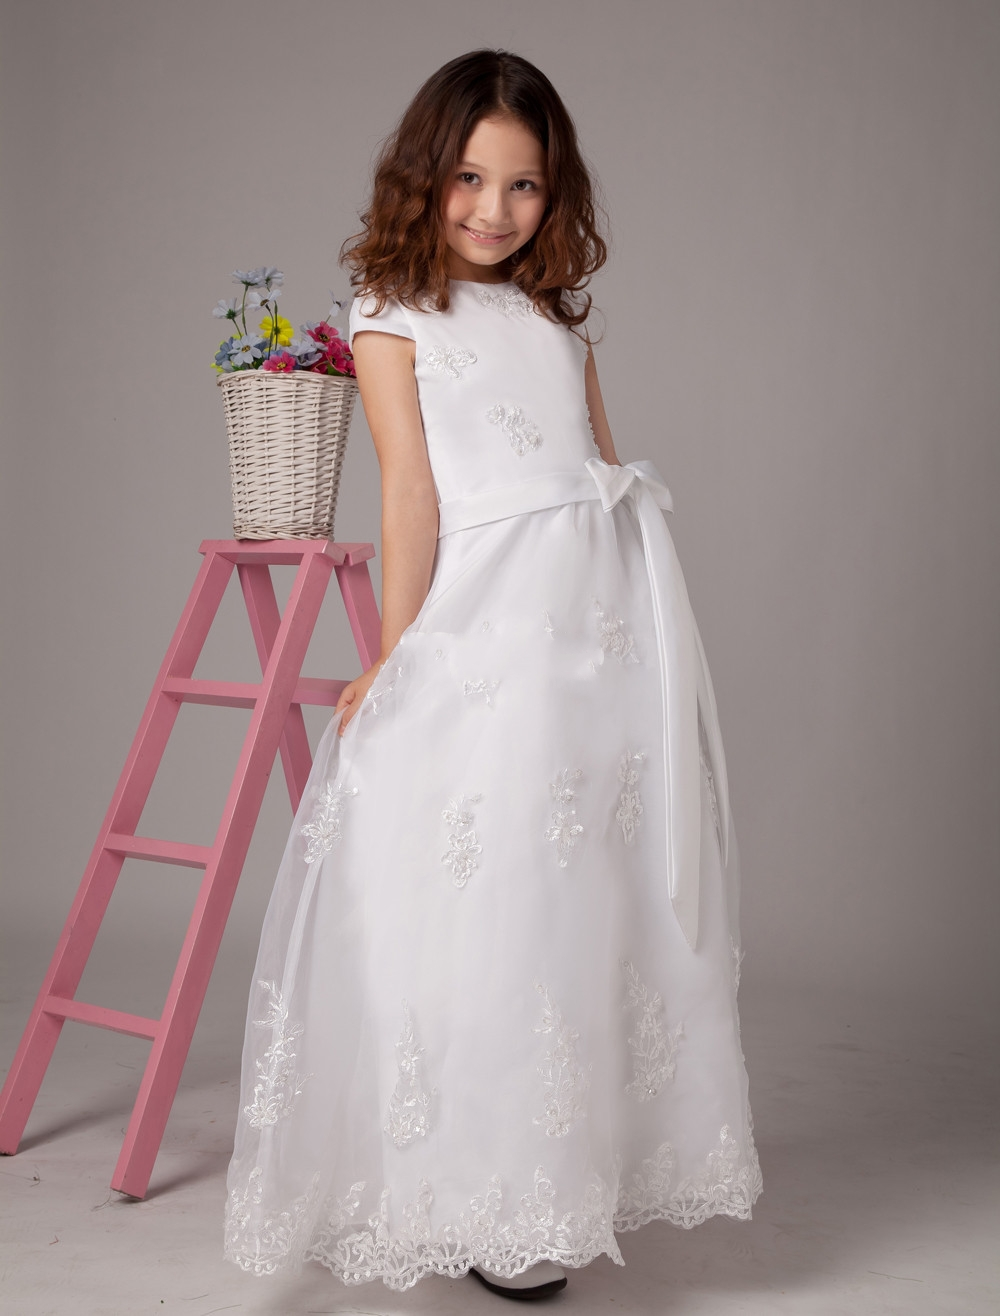 Hot sale cheap white ivory lace flower girl dress girls pageant hot sale cheap white ivory lace flower girl dress girls pageant dresses with sash bow vestido para daminha applique gown izmirmasajfo